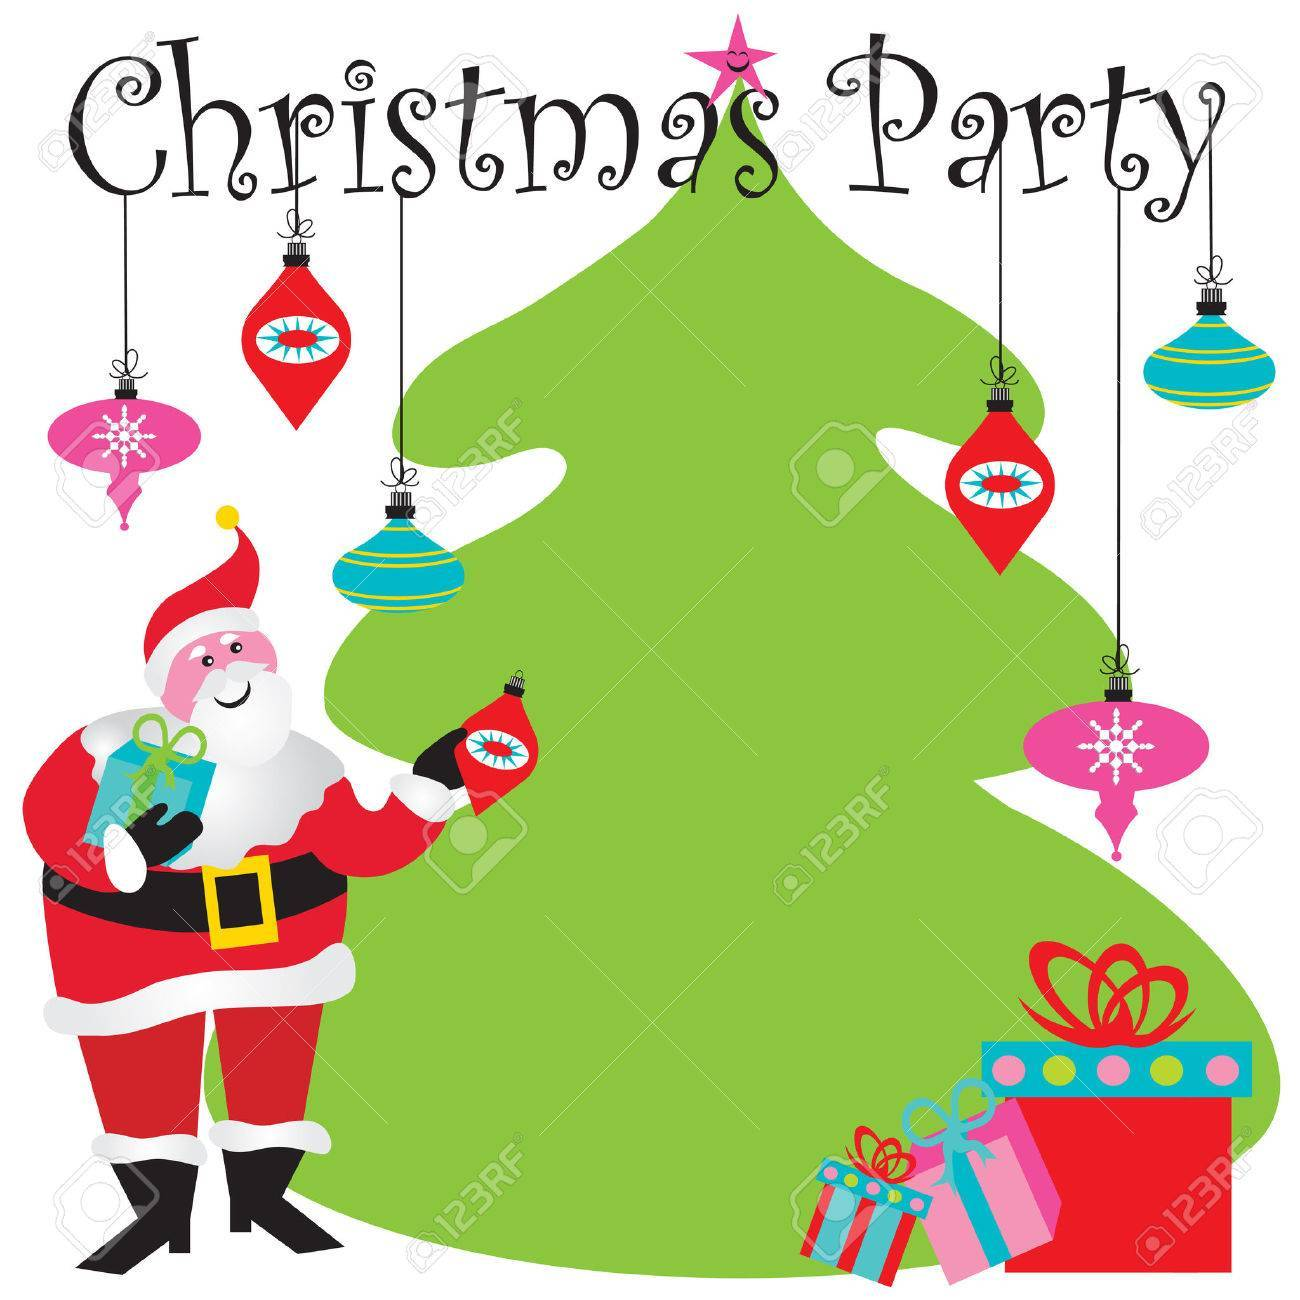 Free christmas party invitation clipart 5 » Clipart Portal.